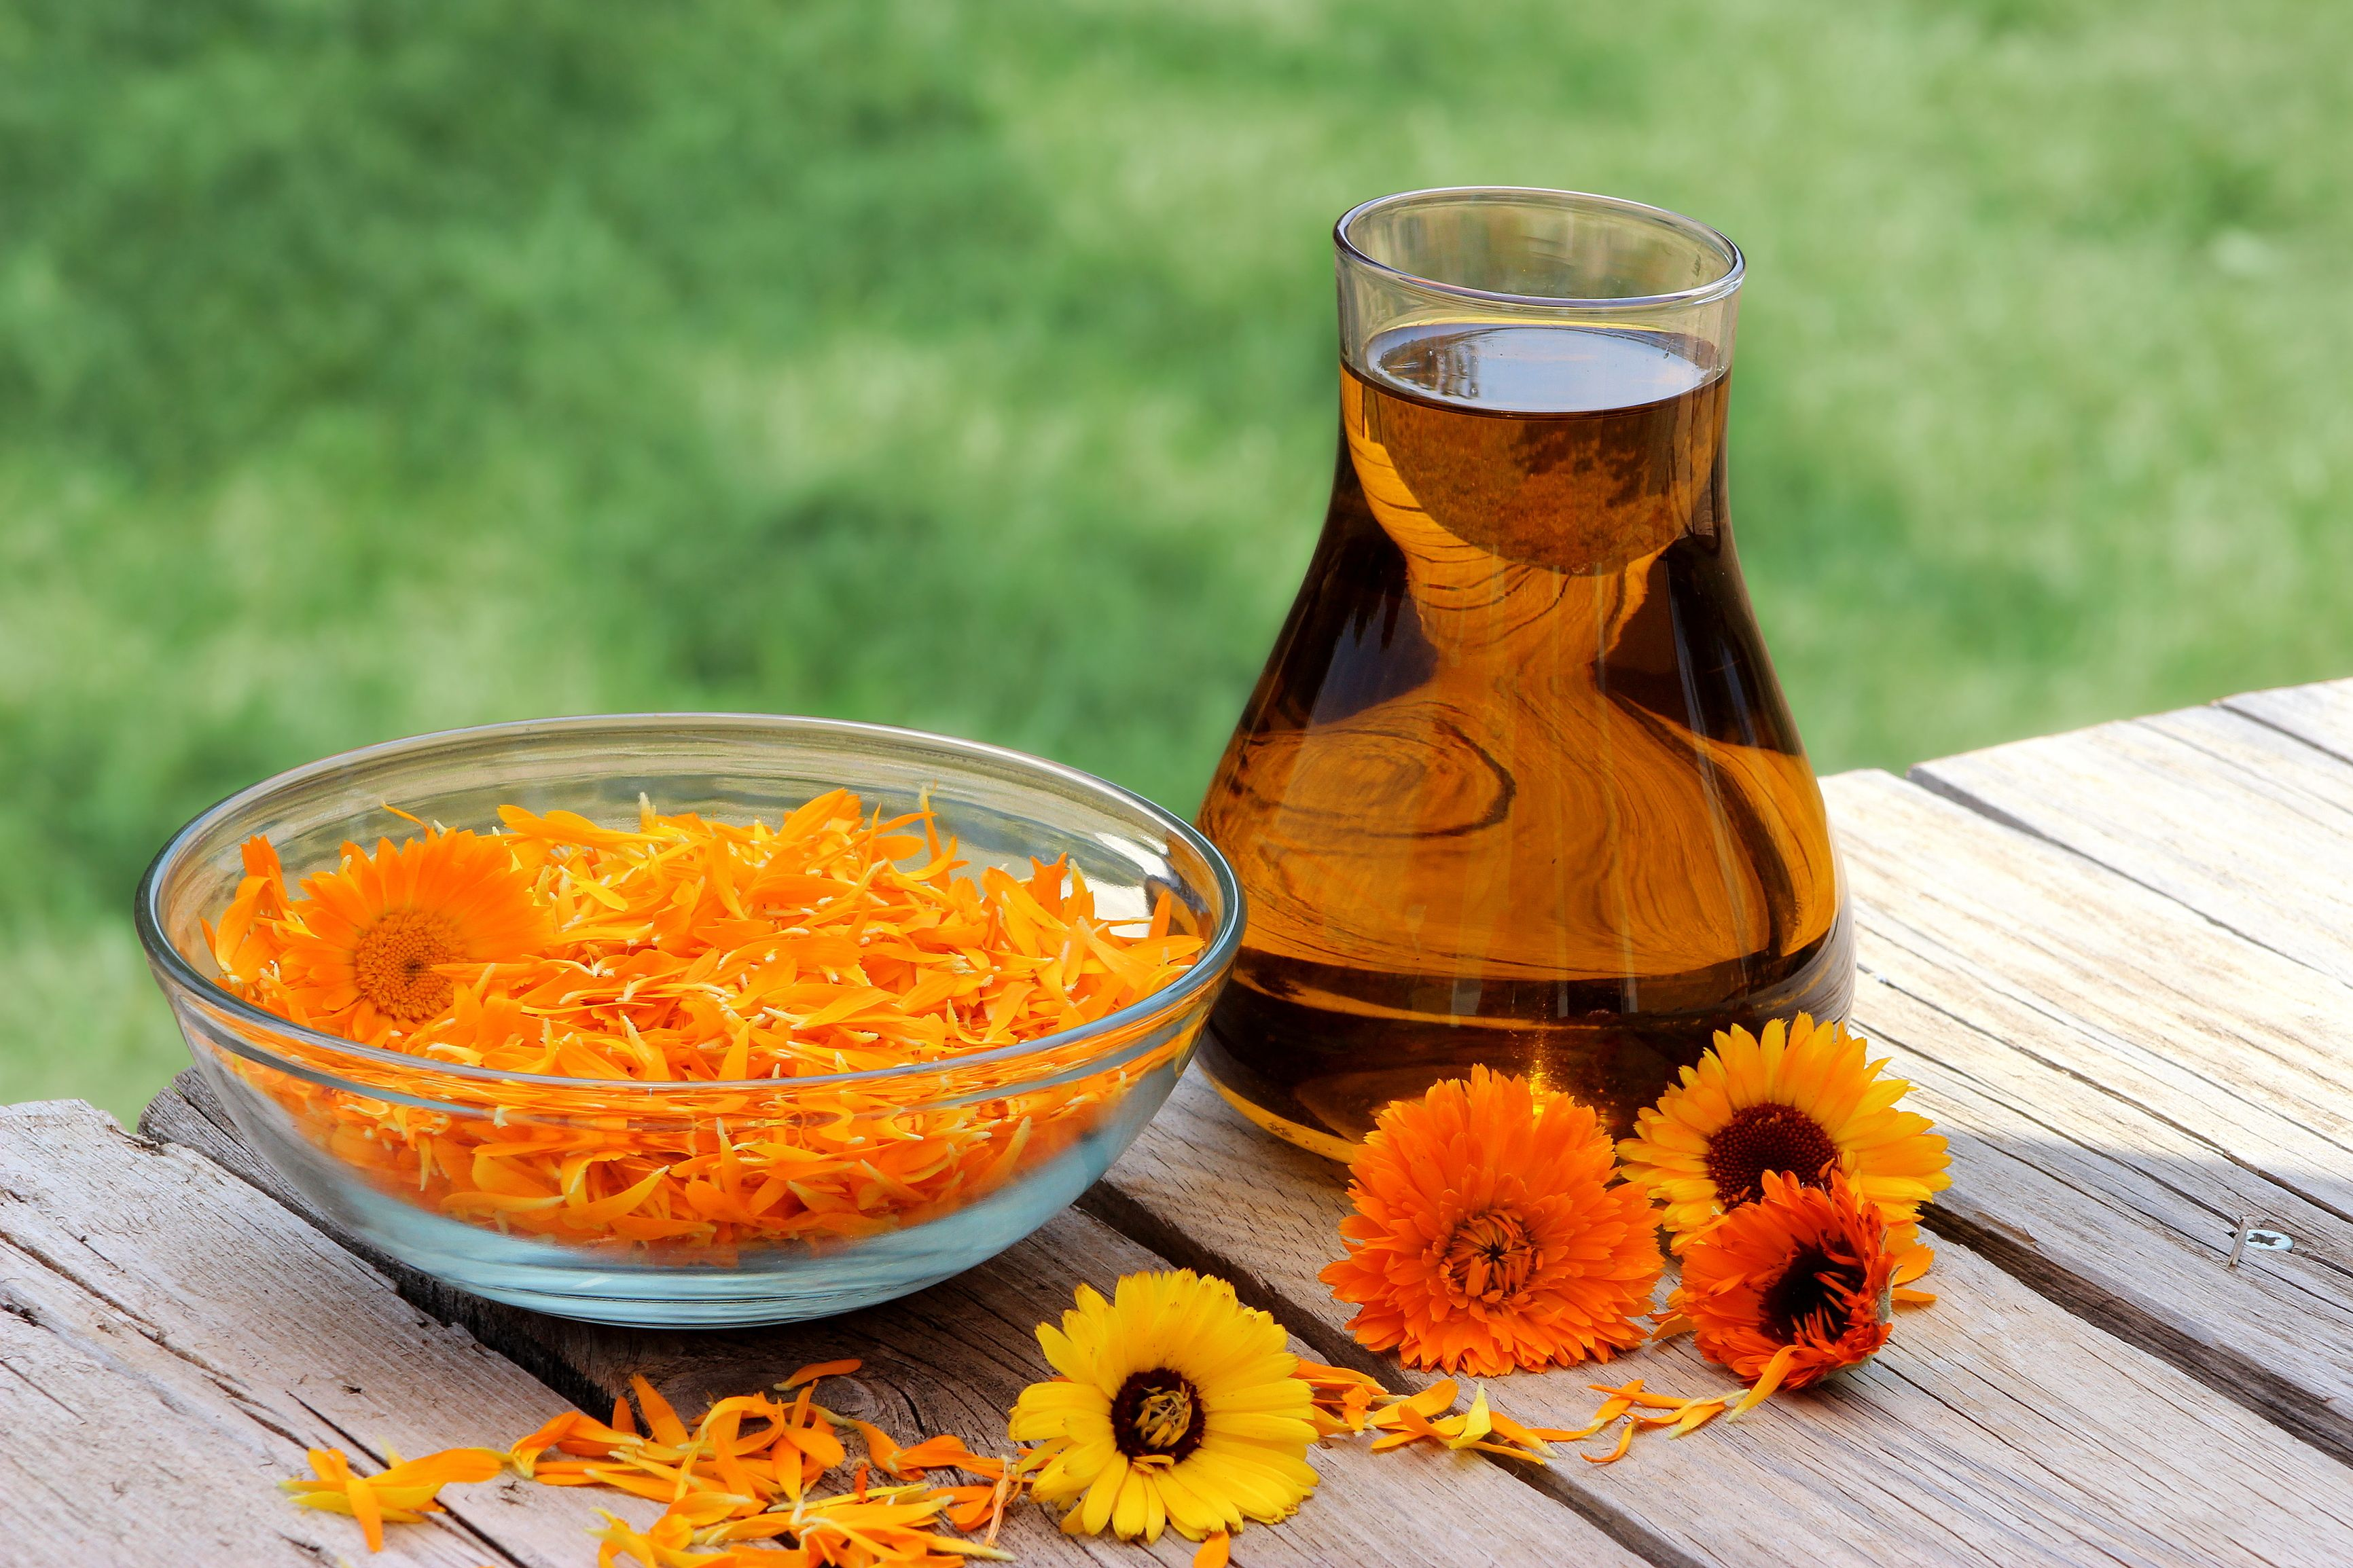 Global United States European Union And China Calendula Officinalis Flower Extract Market Research Report 2019 2025 24 Market Reports Calendula Oil Calendula Infused Oils